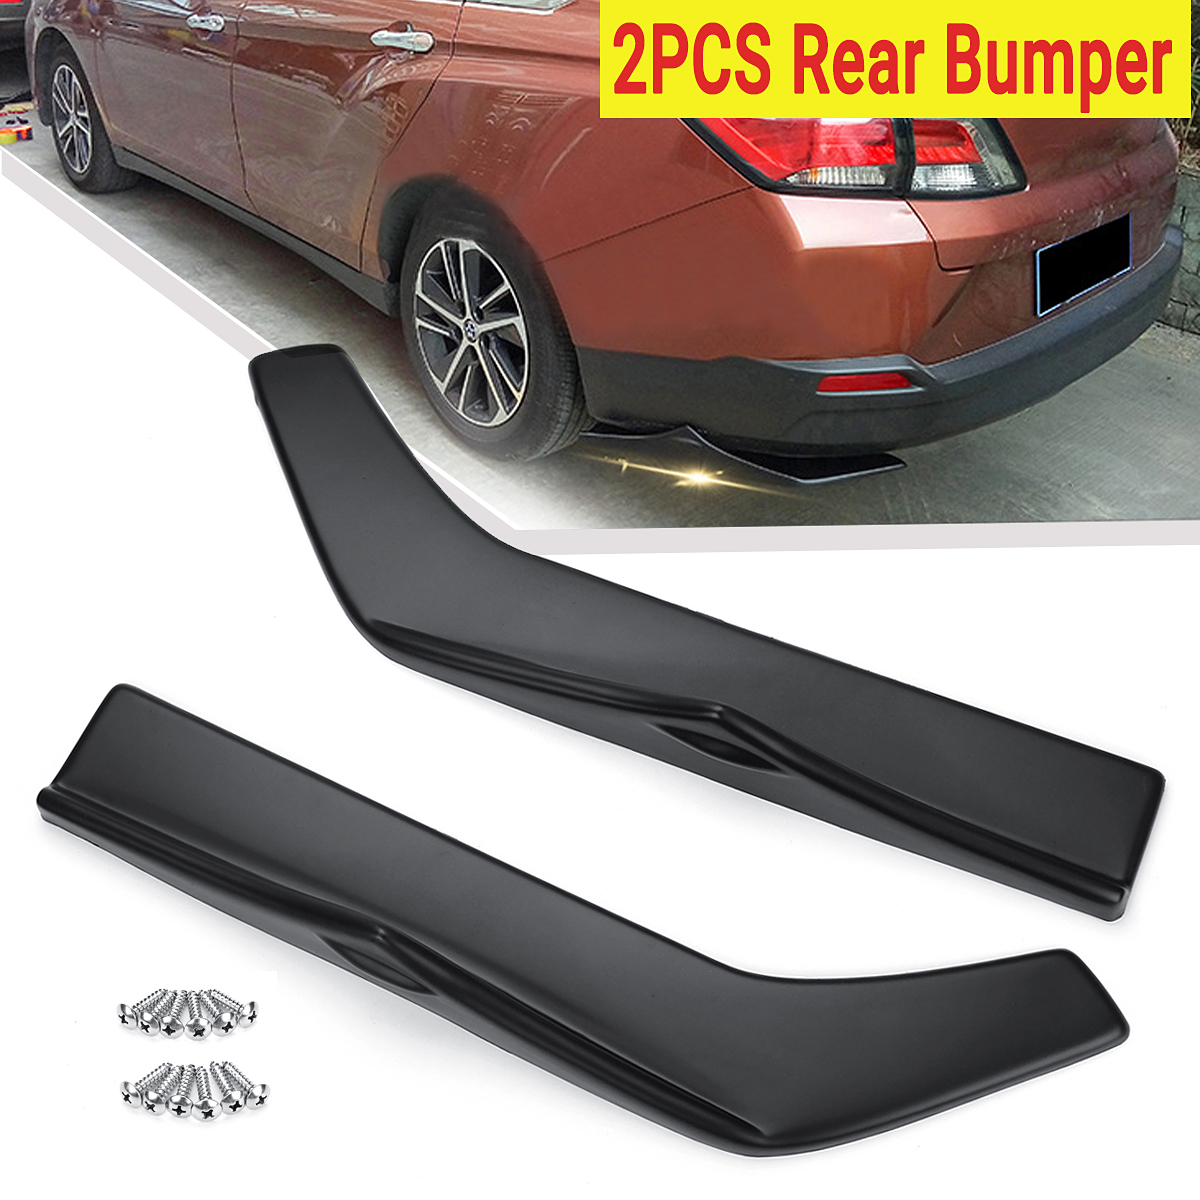 2pcs Universal Car Rear Left&Right Bump Lip Wrap Splitters Side Skirt Extensions Protection Cover2pcs Universal Car Rear Left&Right Bump Lip Wrap Splitters Side Skirt Extensions Protection Cover